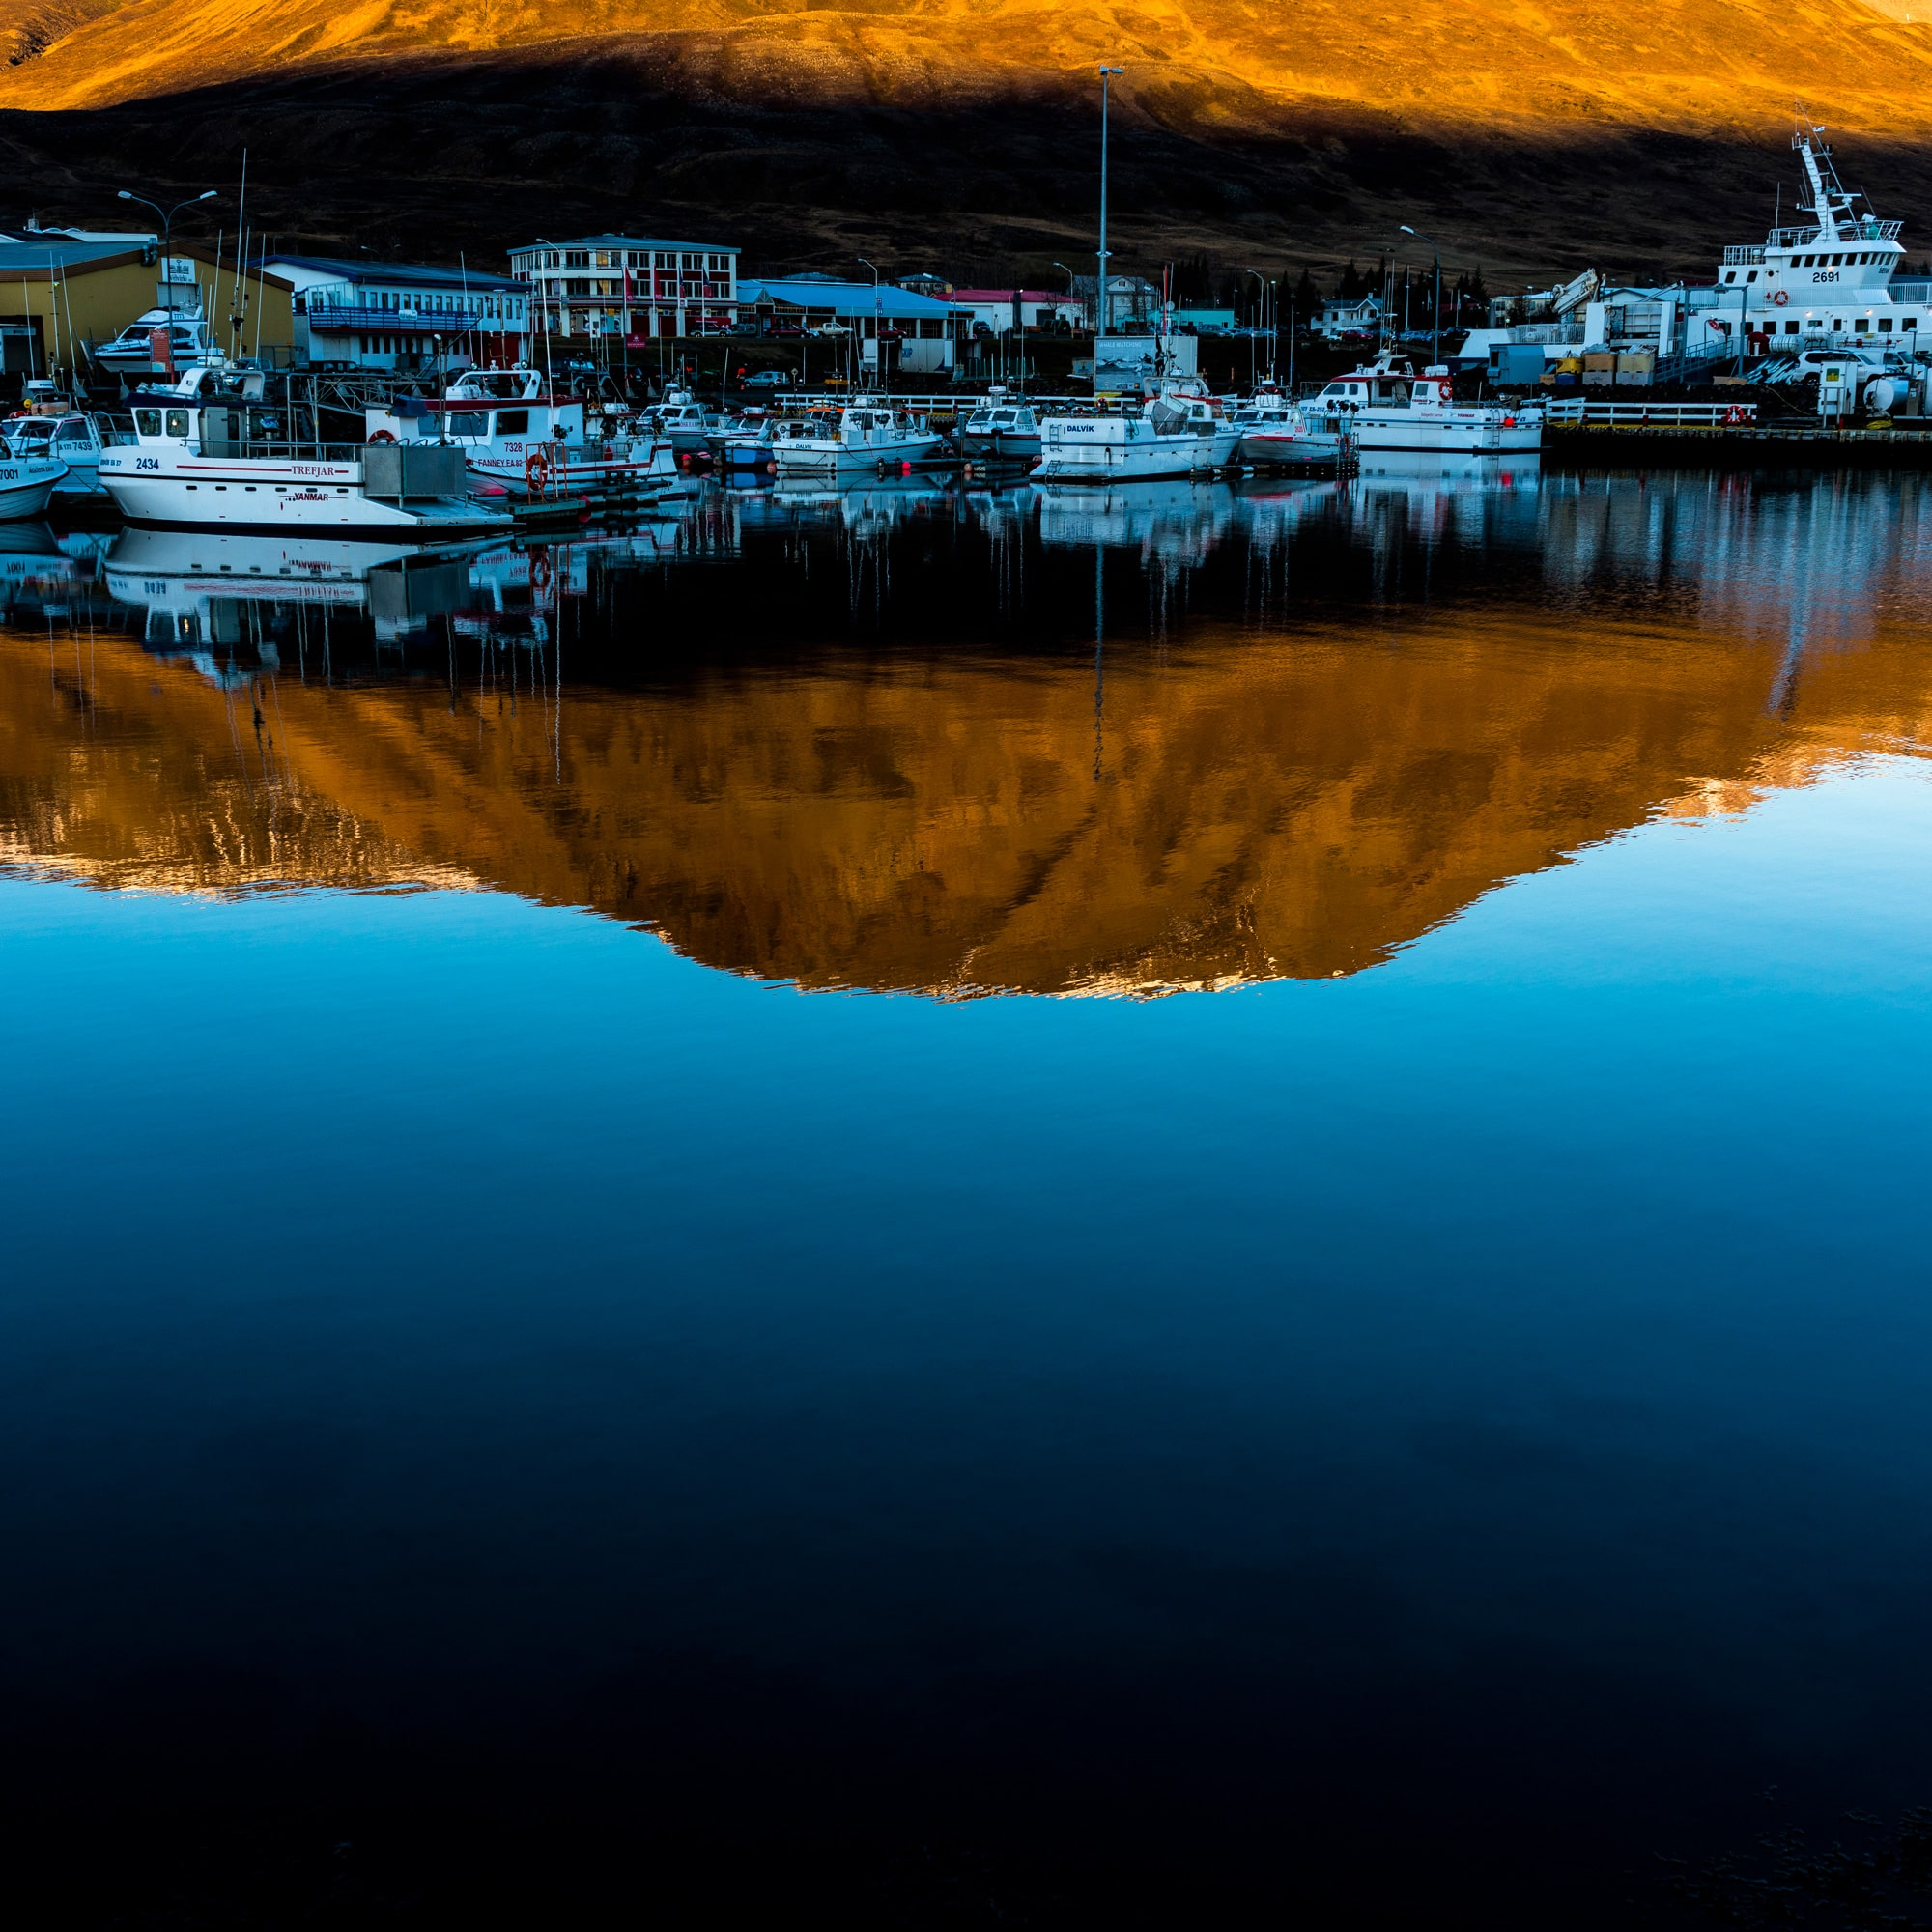 pall stefansson sony RX1RII icelandic harbour reflection of boats